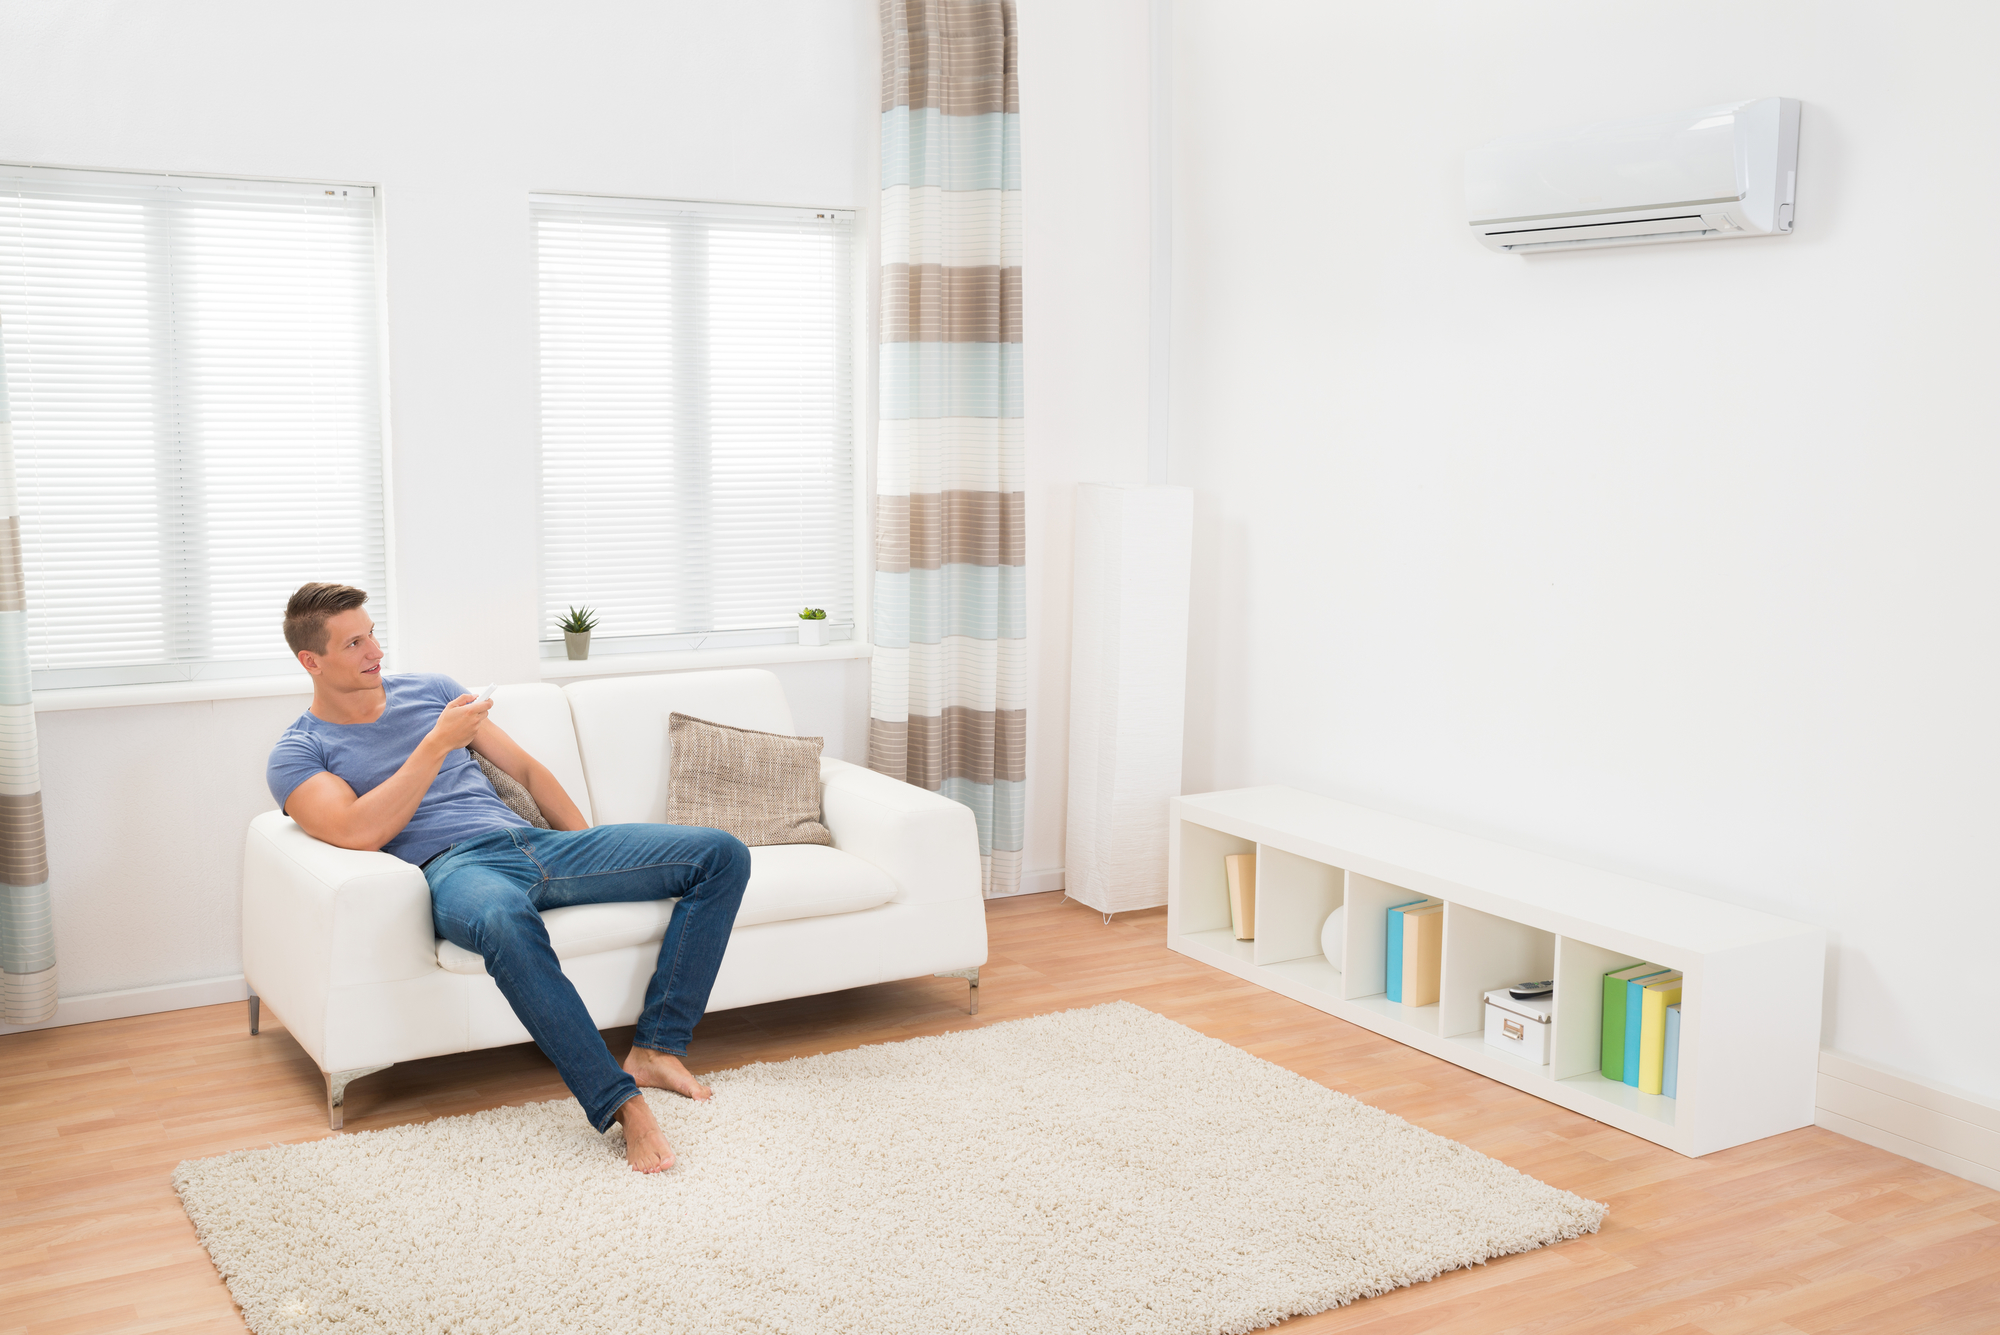 summer air conditioning system pdf